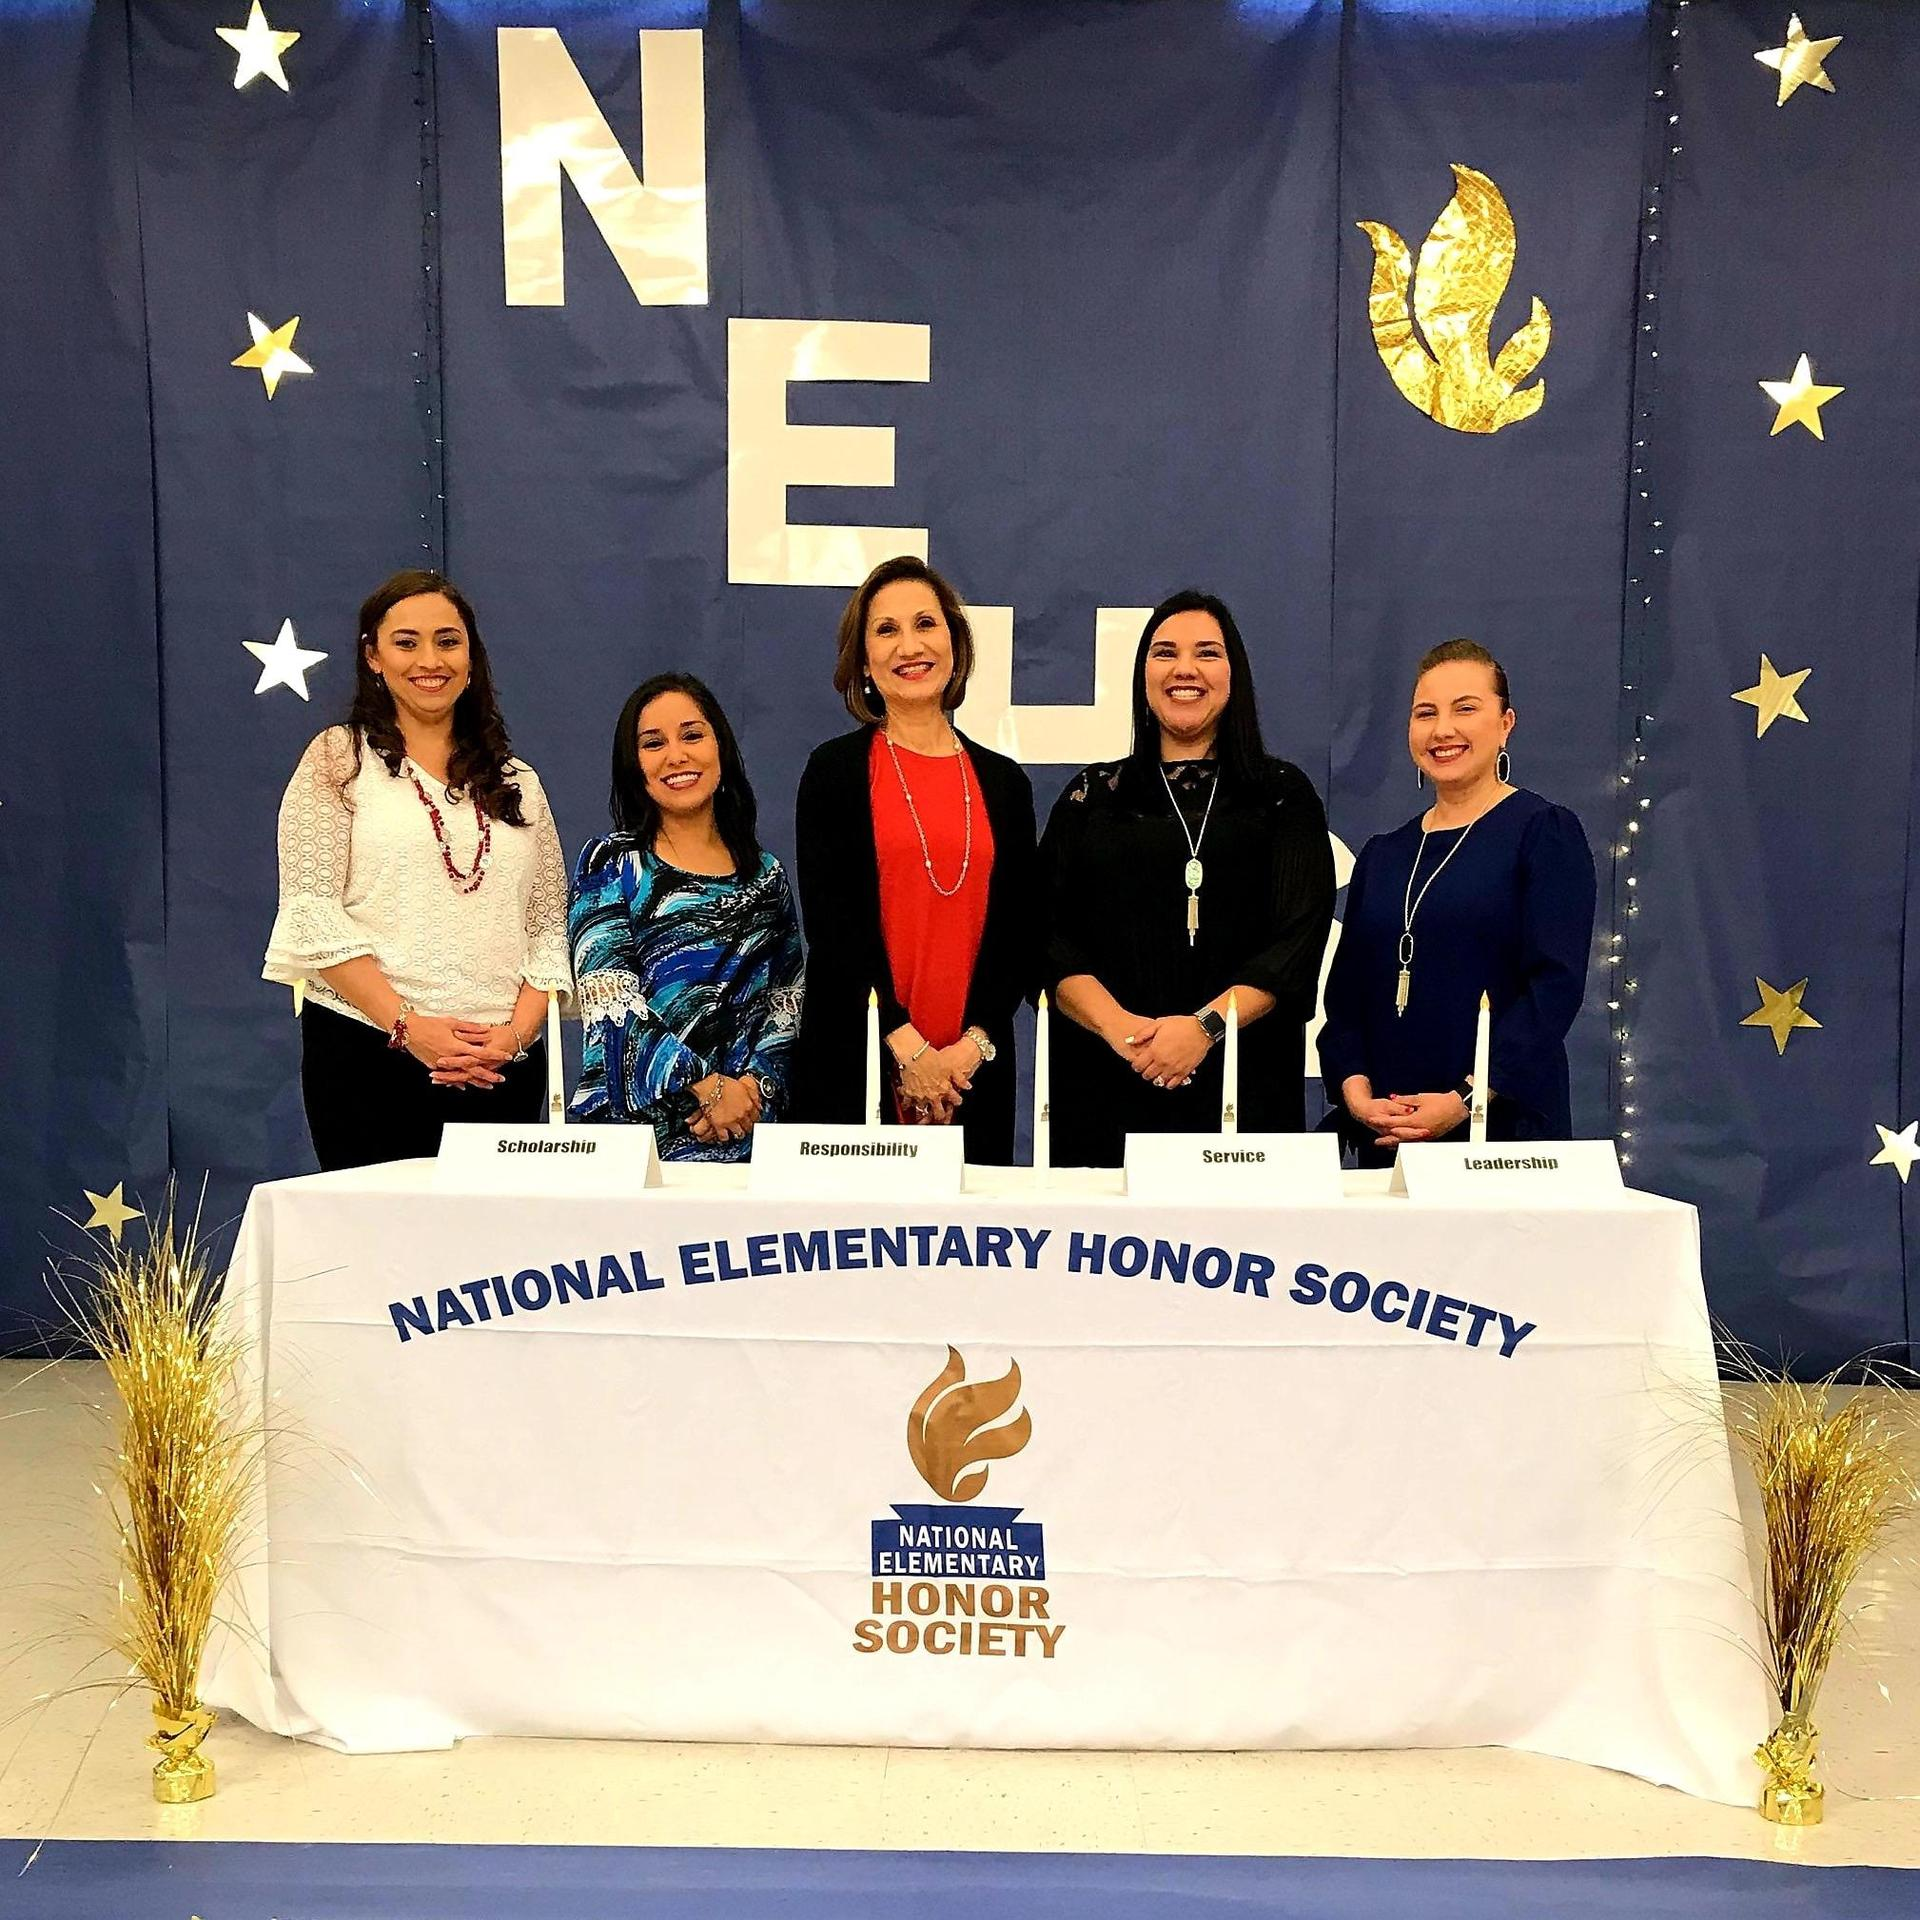 NEHS staff posing at ceremony